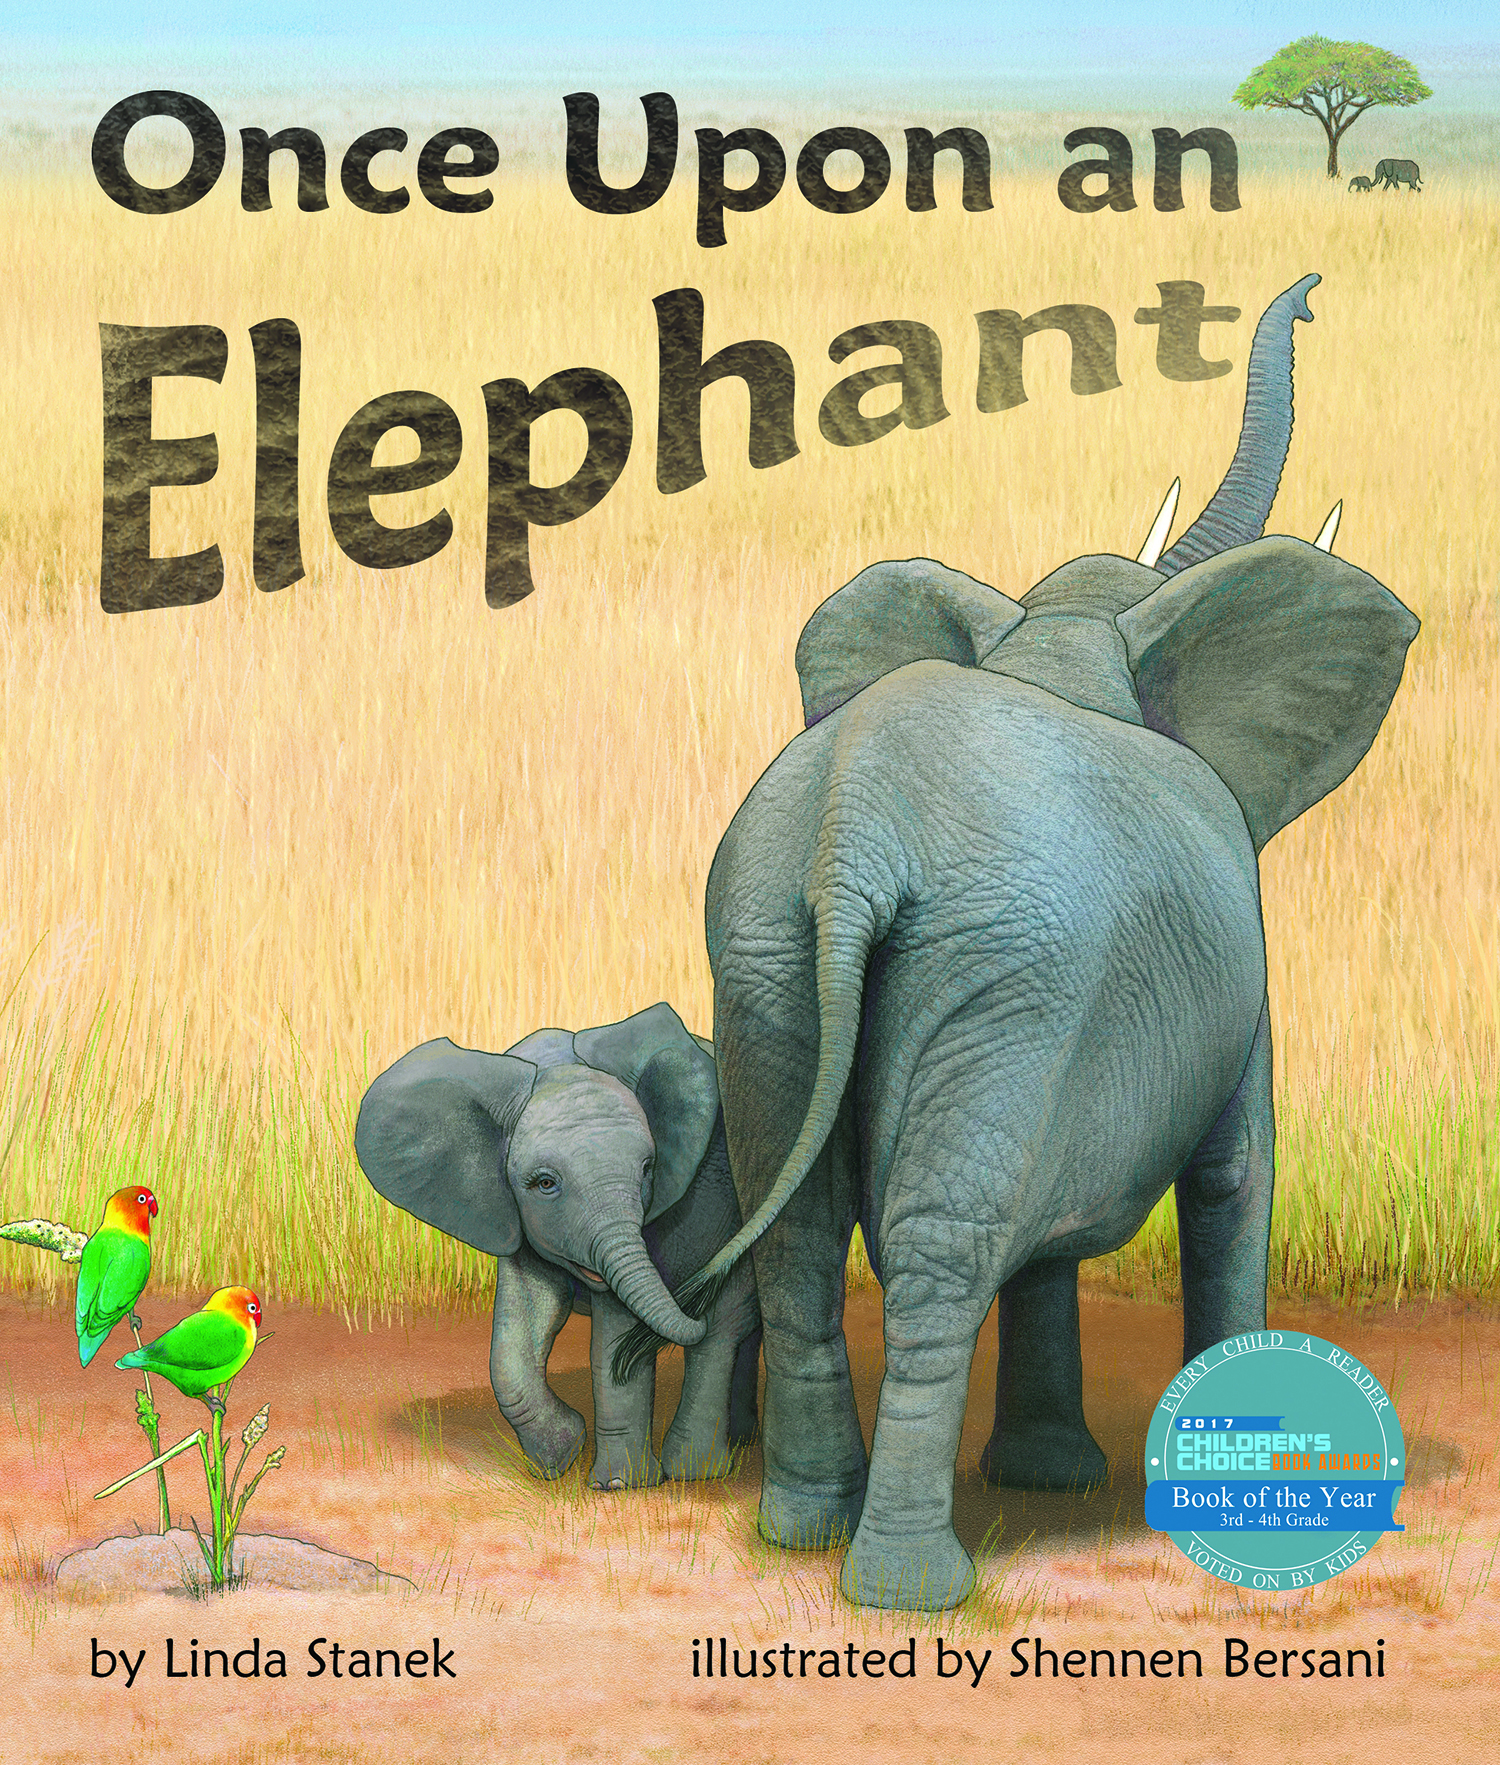 Once Upon an Elephant By Linda Stanek, illustrated by Shennen Bersani